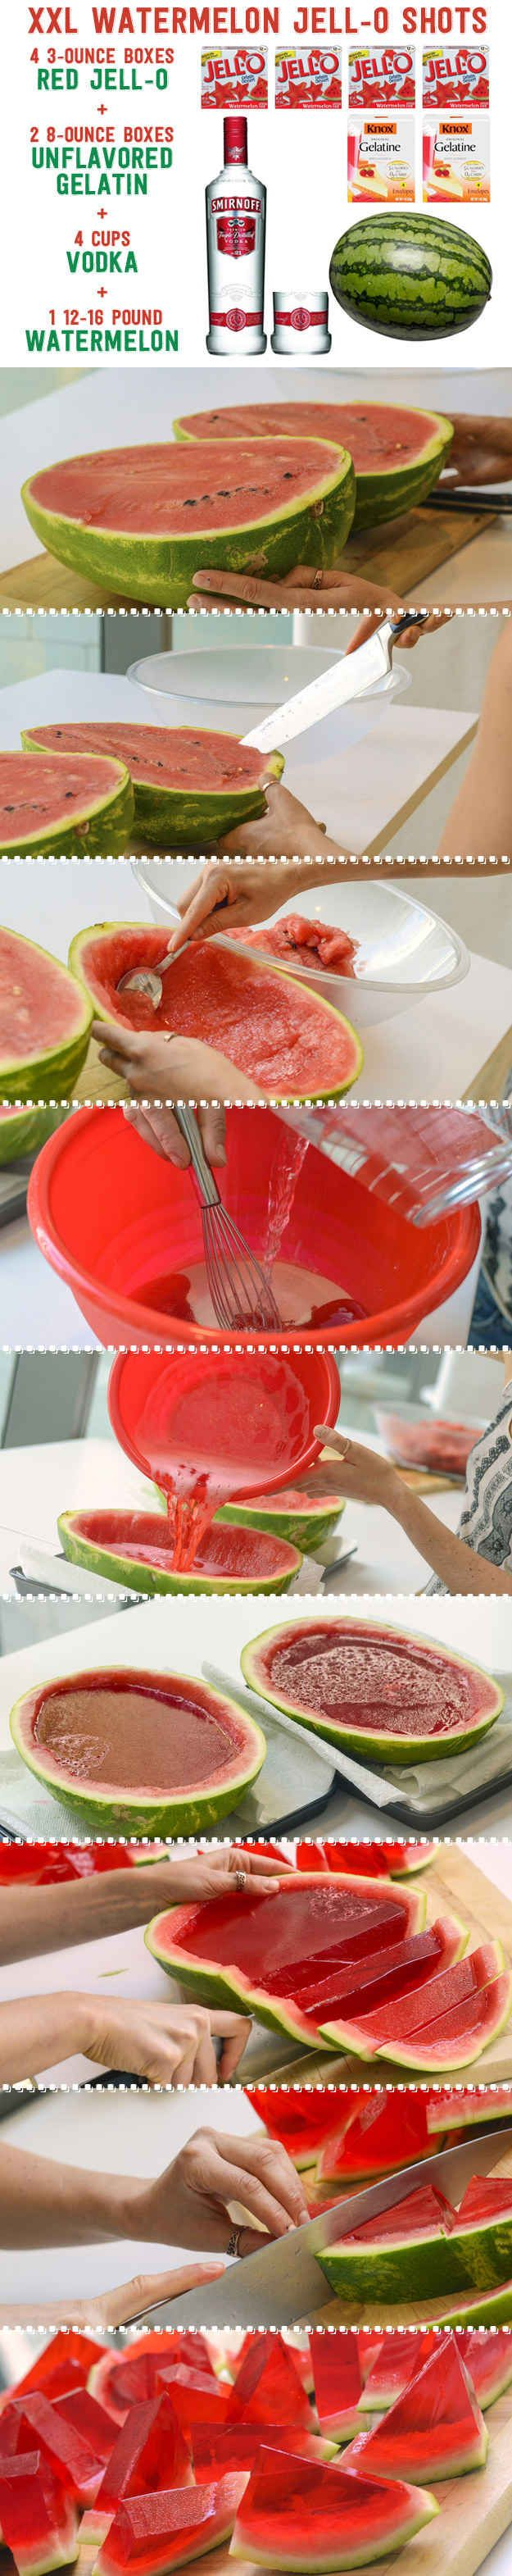 Here's How To Make XXL Watermelon Jell-O Shots